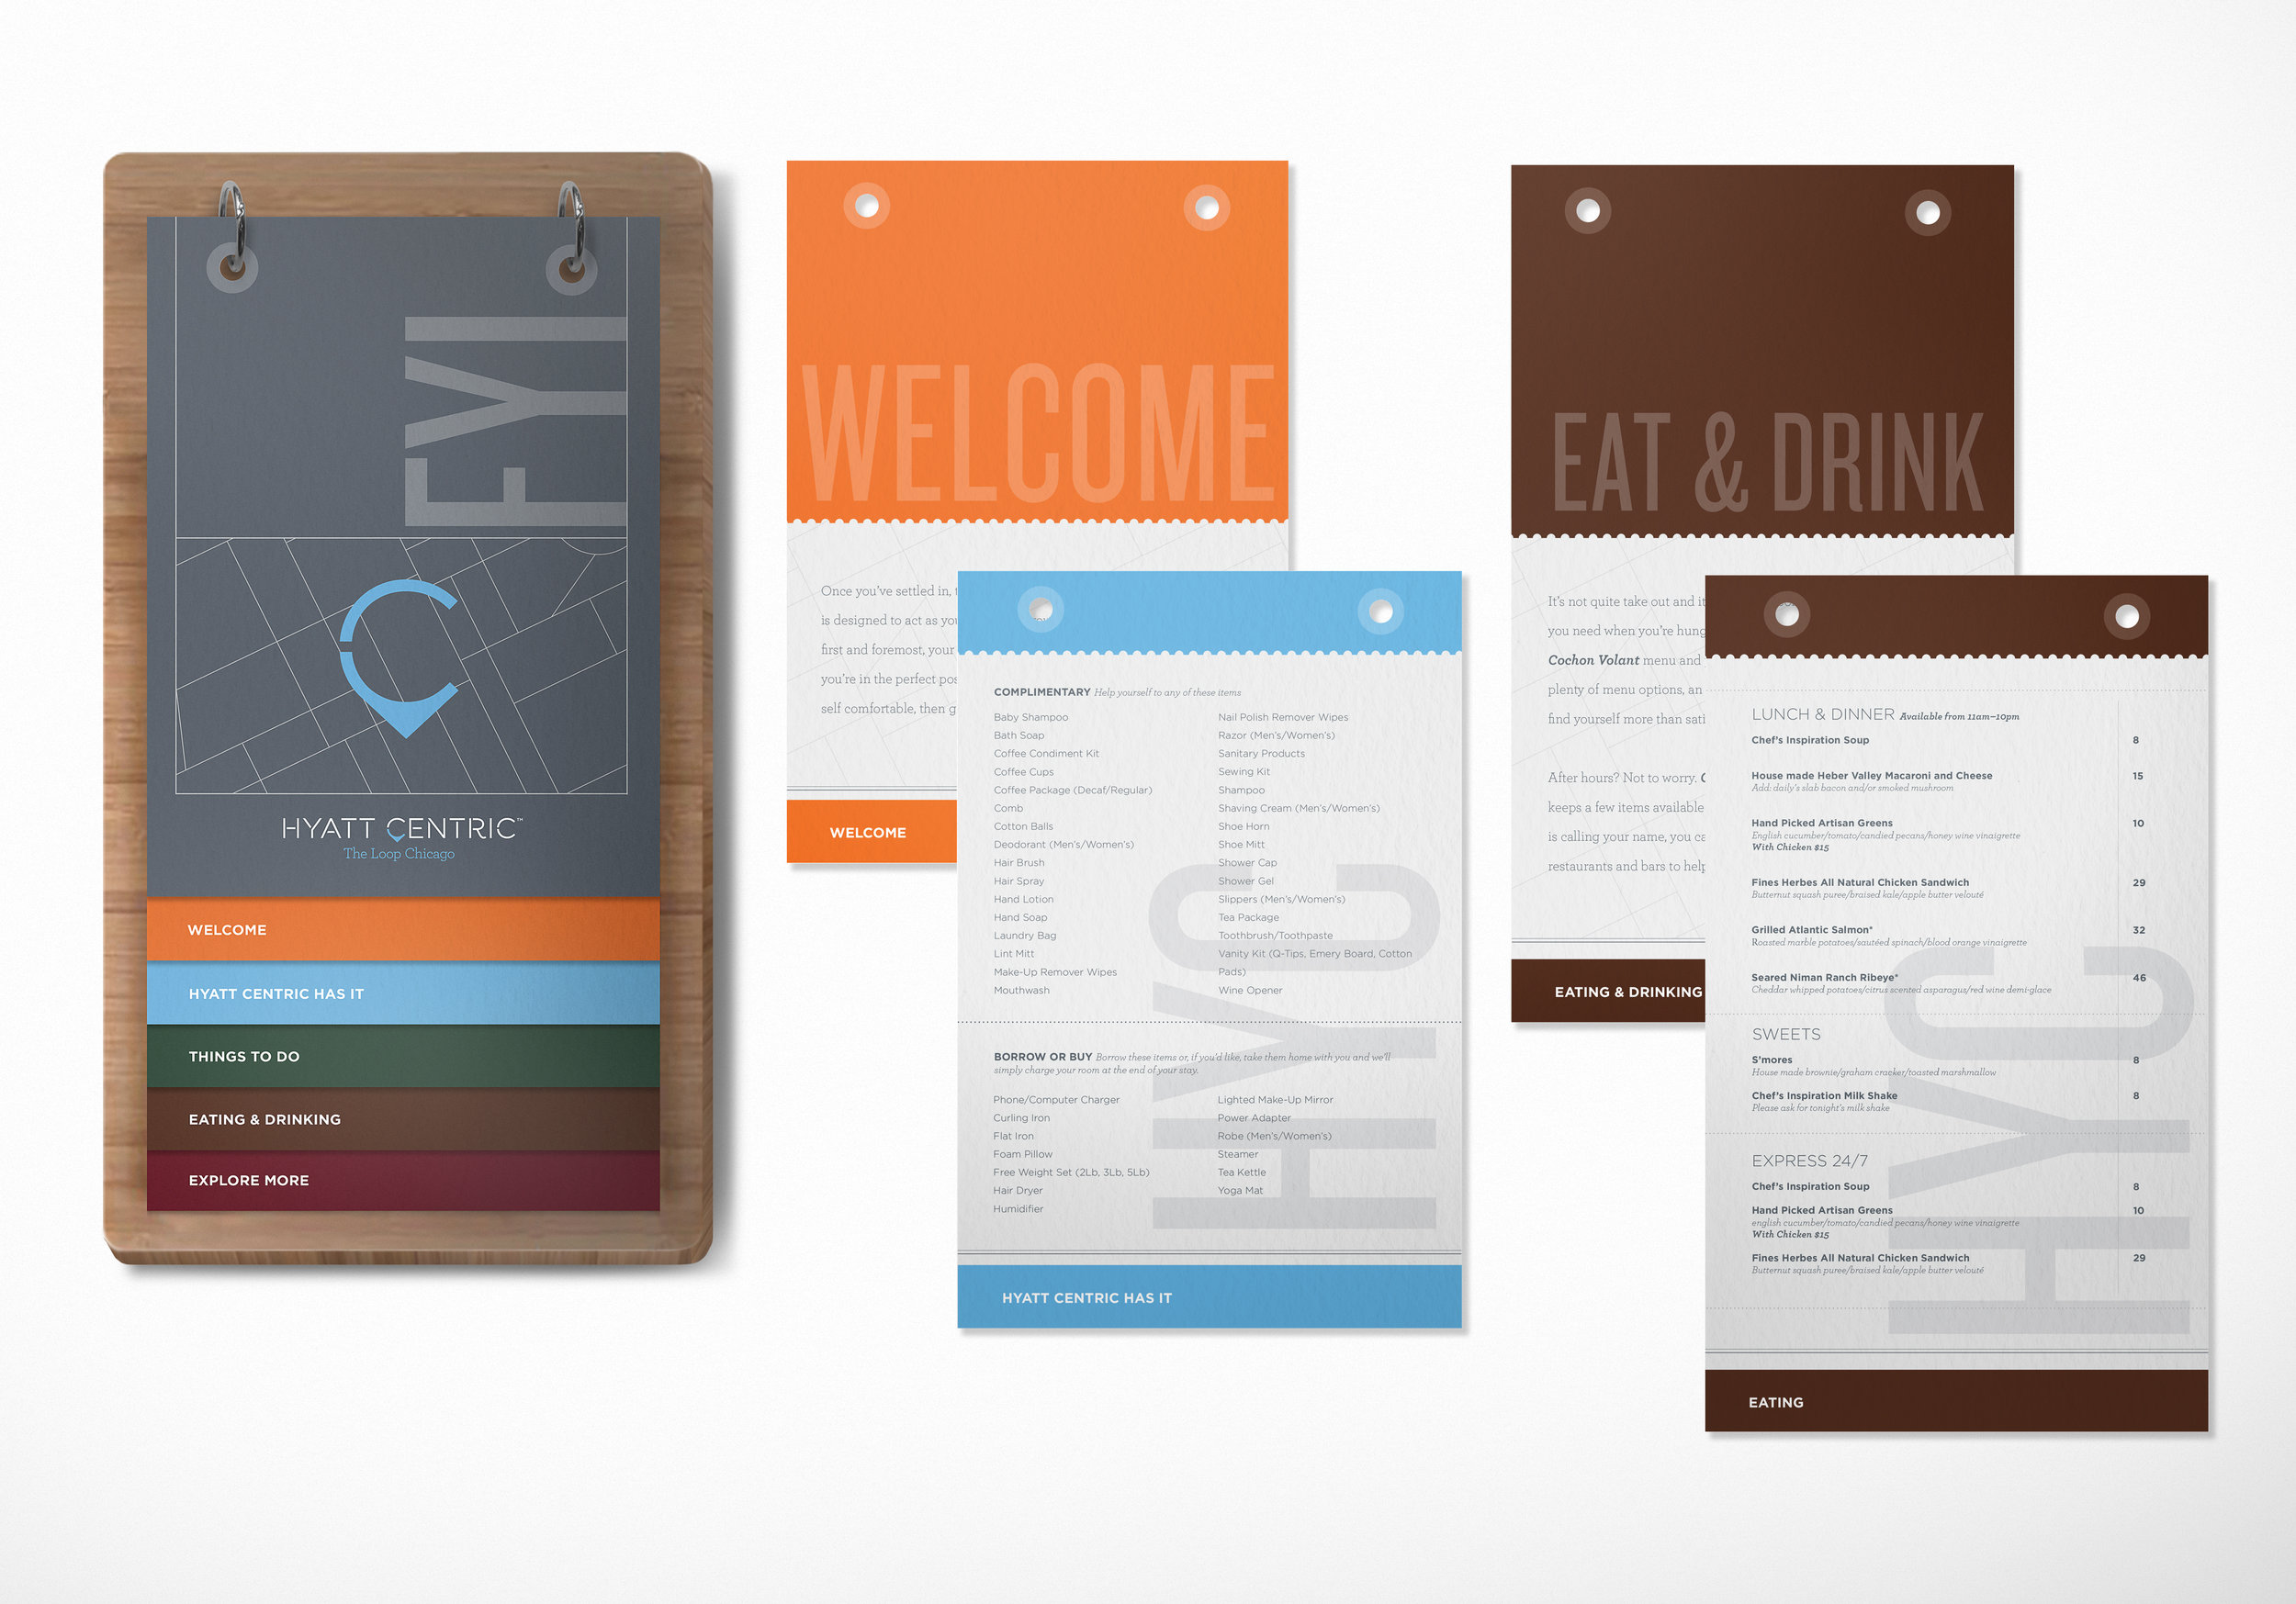 Hotel welcome guide design for Hyatt Centric